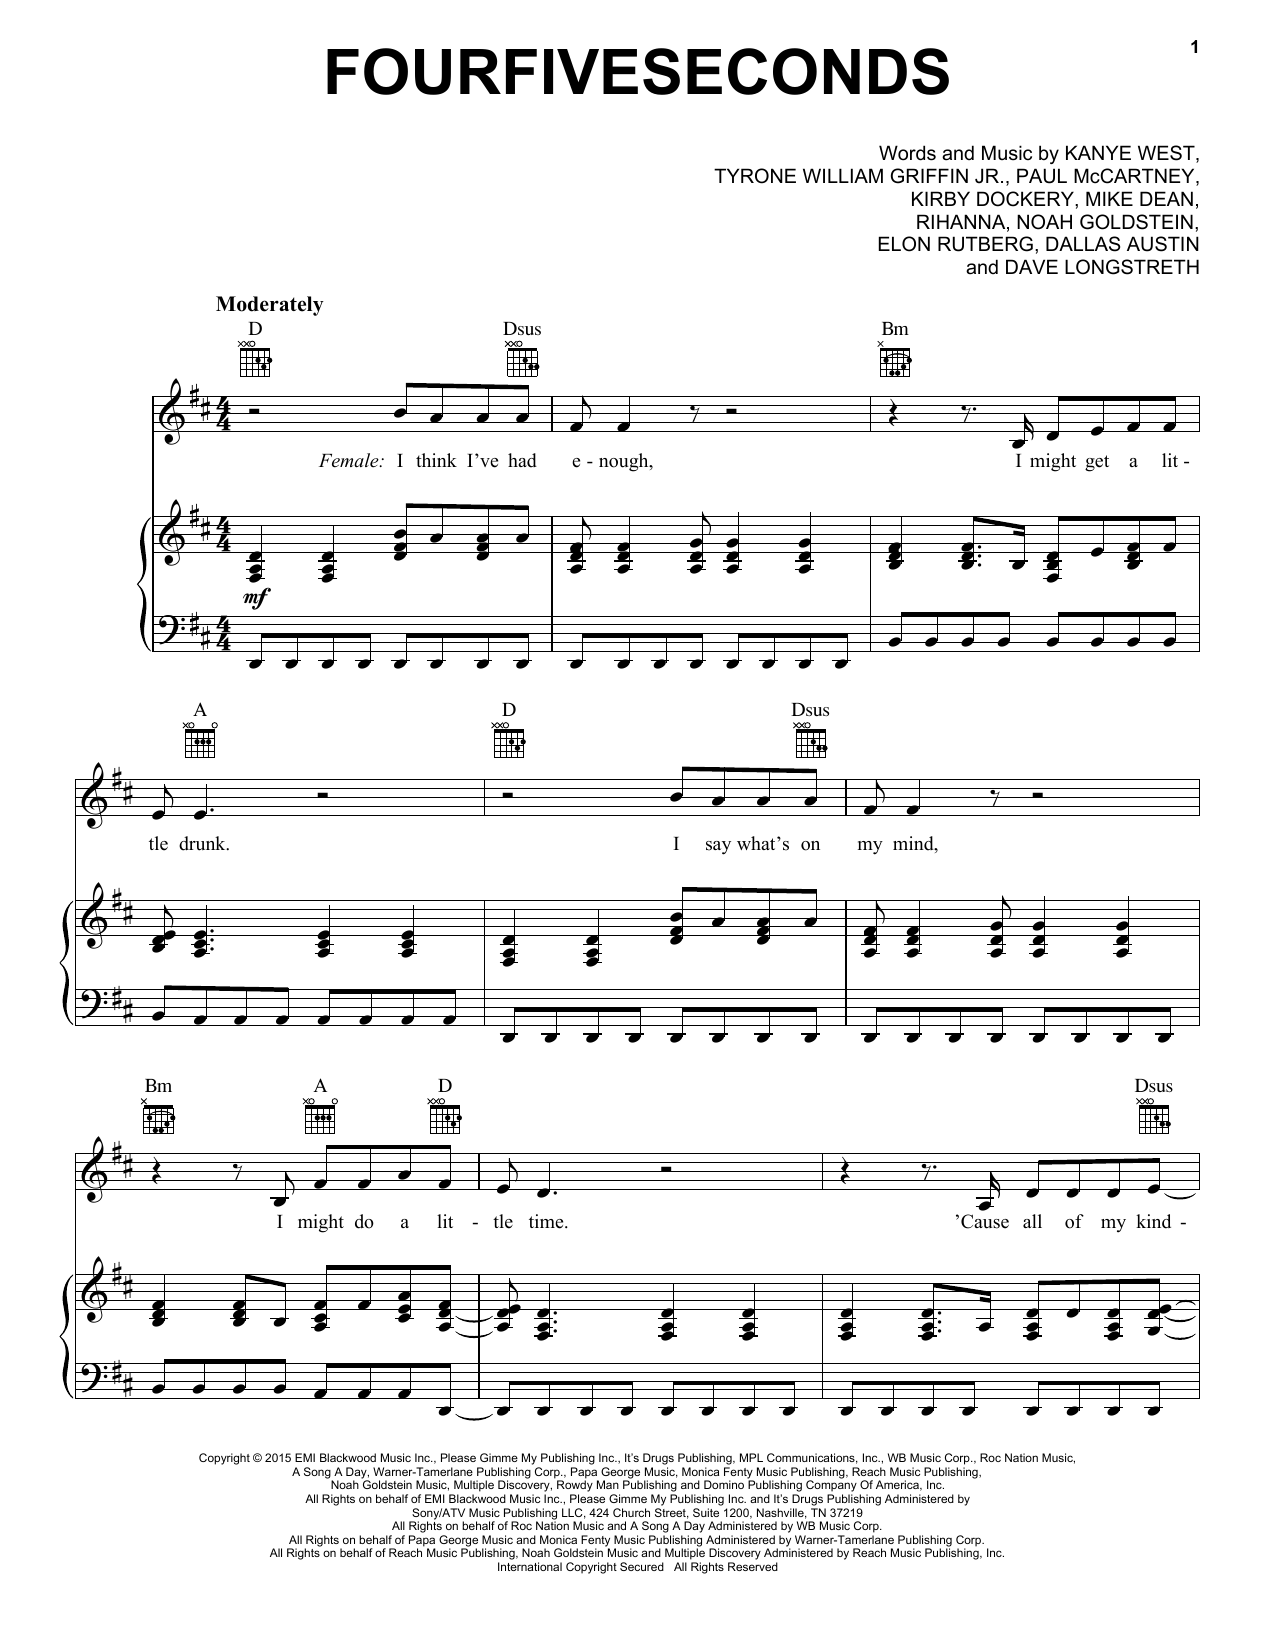 FourFiveSeconds (feat. Kanye West and Paul McCartney) Sheet Music